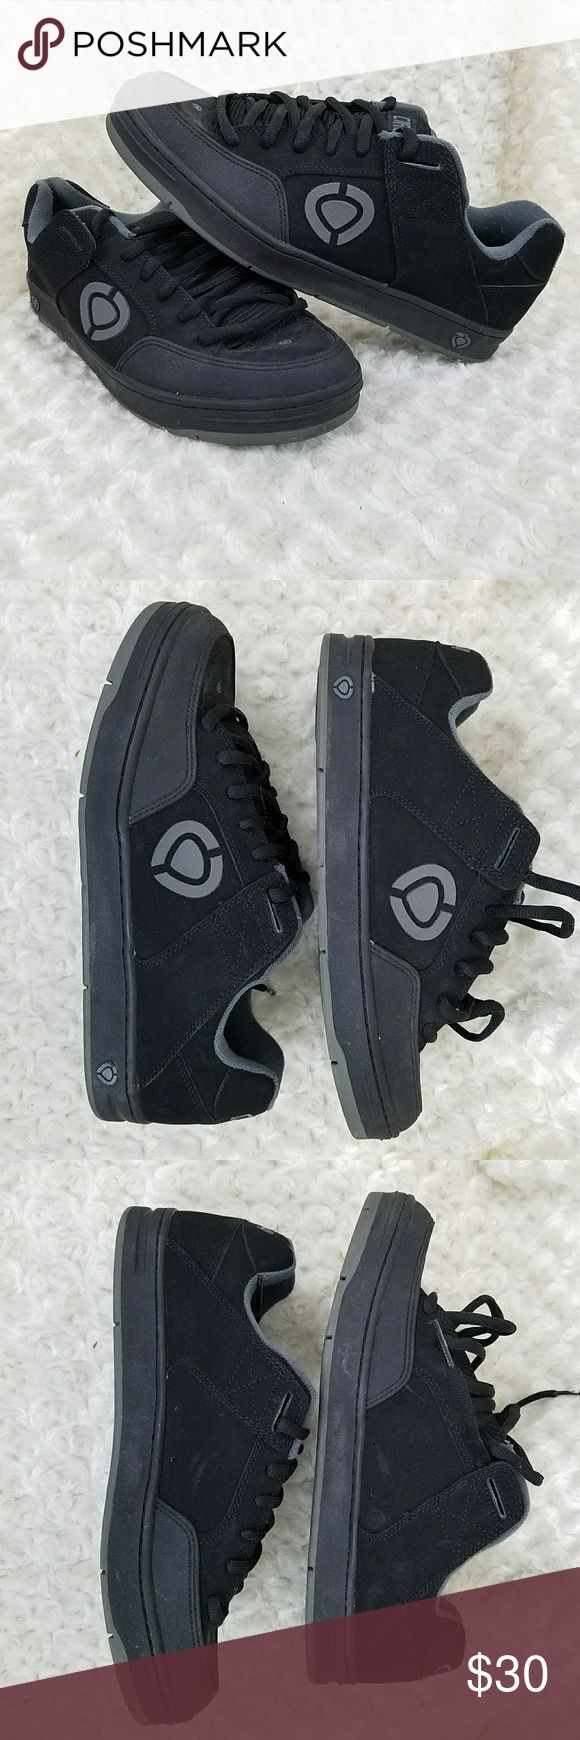 EUC Circa Skate Shoes Sz 14 Black and grey Men's Circa Skate Shoes in Sz 14M. Style CX205. The tongue is very padded and there is very very little wear. Worn once for a short time. Laces, suede and sole all in excellent condition. Shoes Sneakers